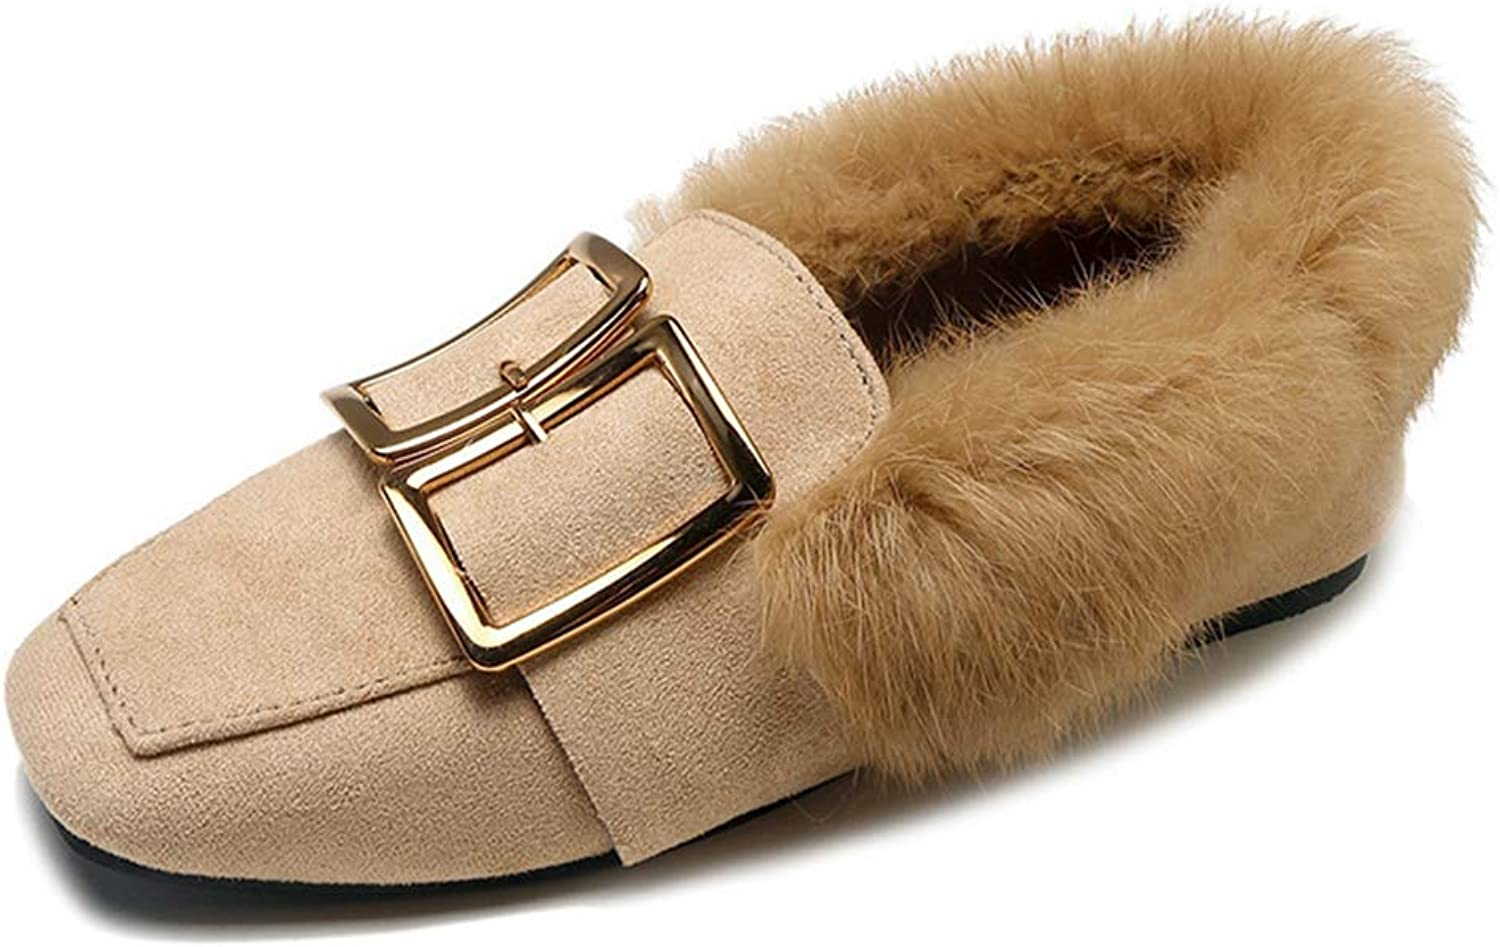 CYBLING Women's Faux Fur Lined Suede Loafers Comfort Metal Accent Slip-on Moccasins